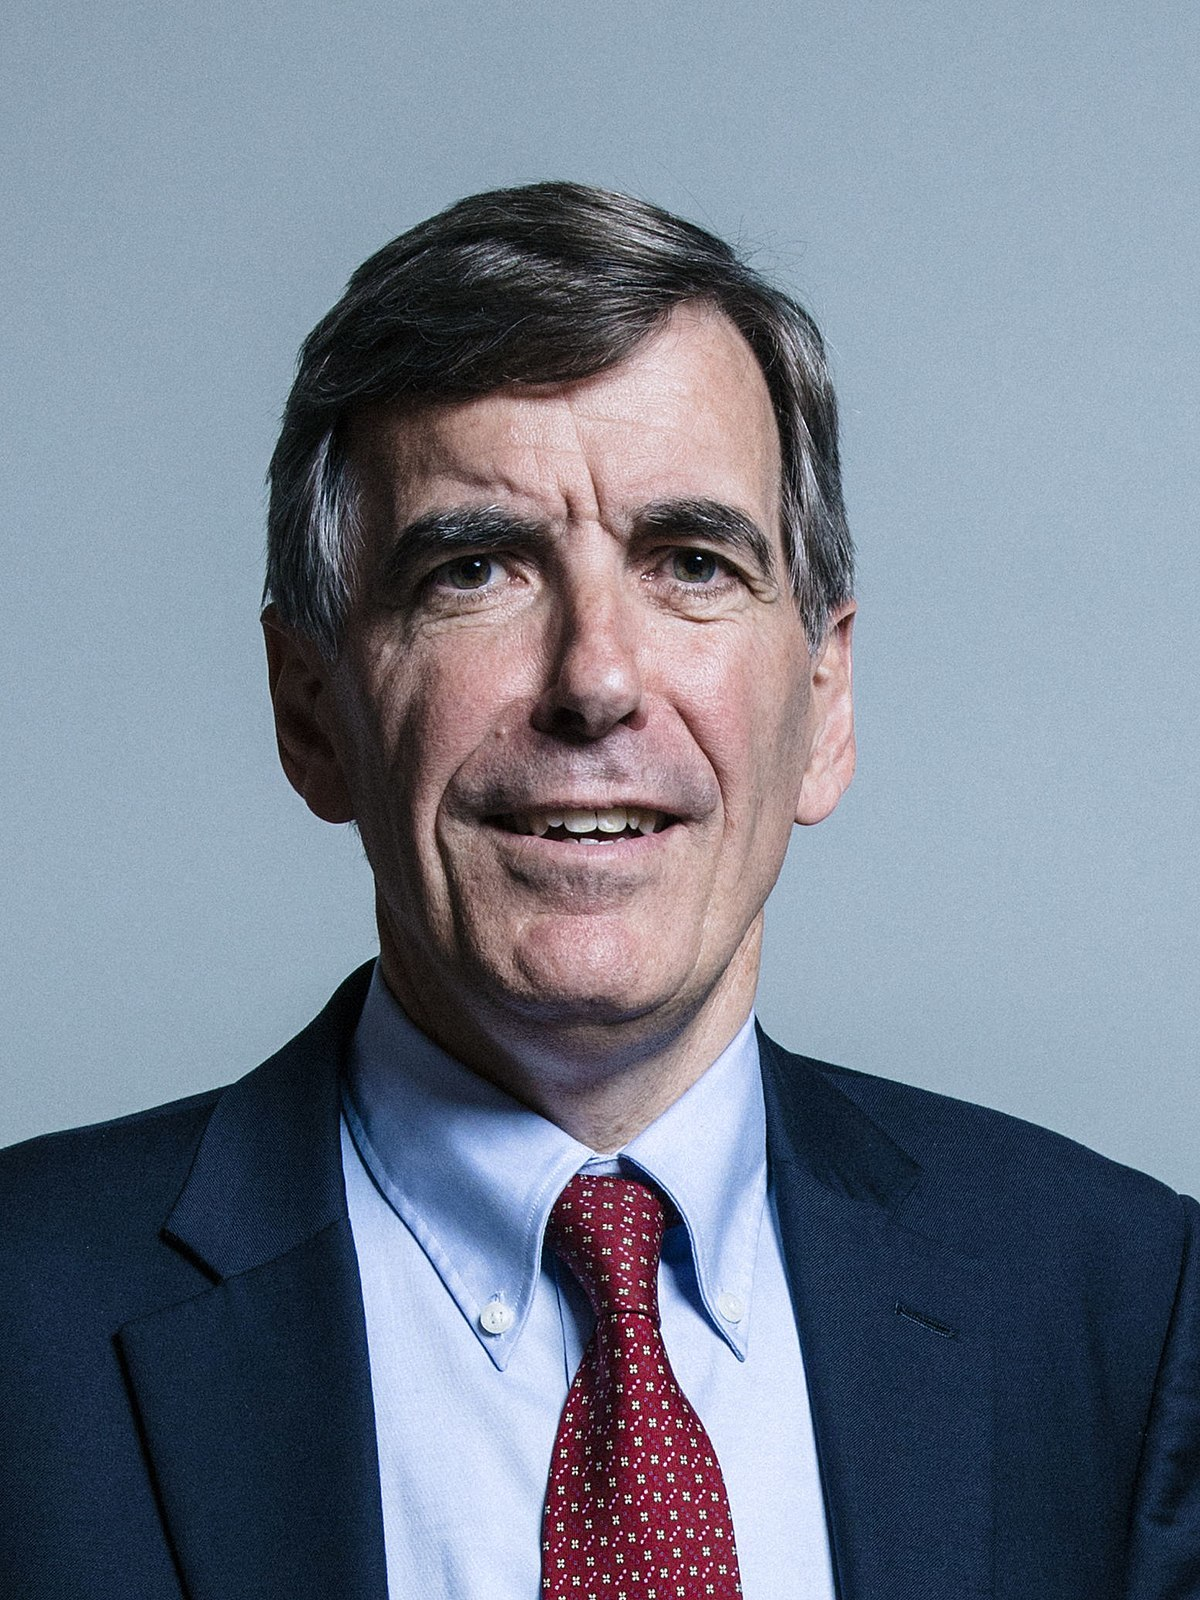 Food and Animal Welfare Minister, David Rutley. 			        Photo: DEFRA